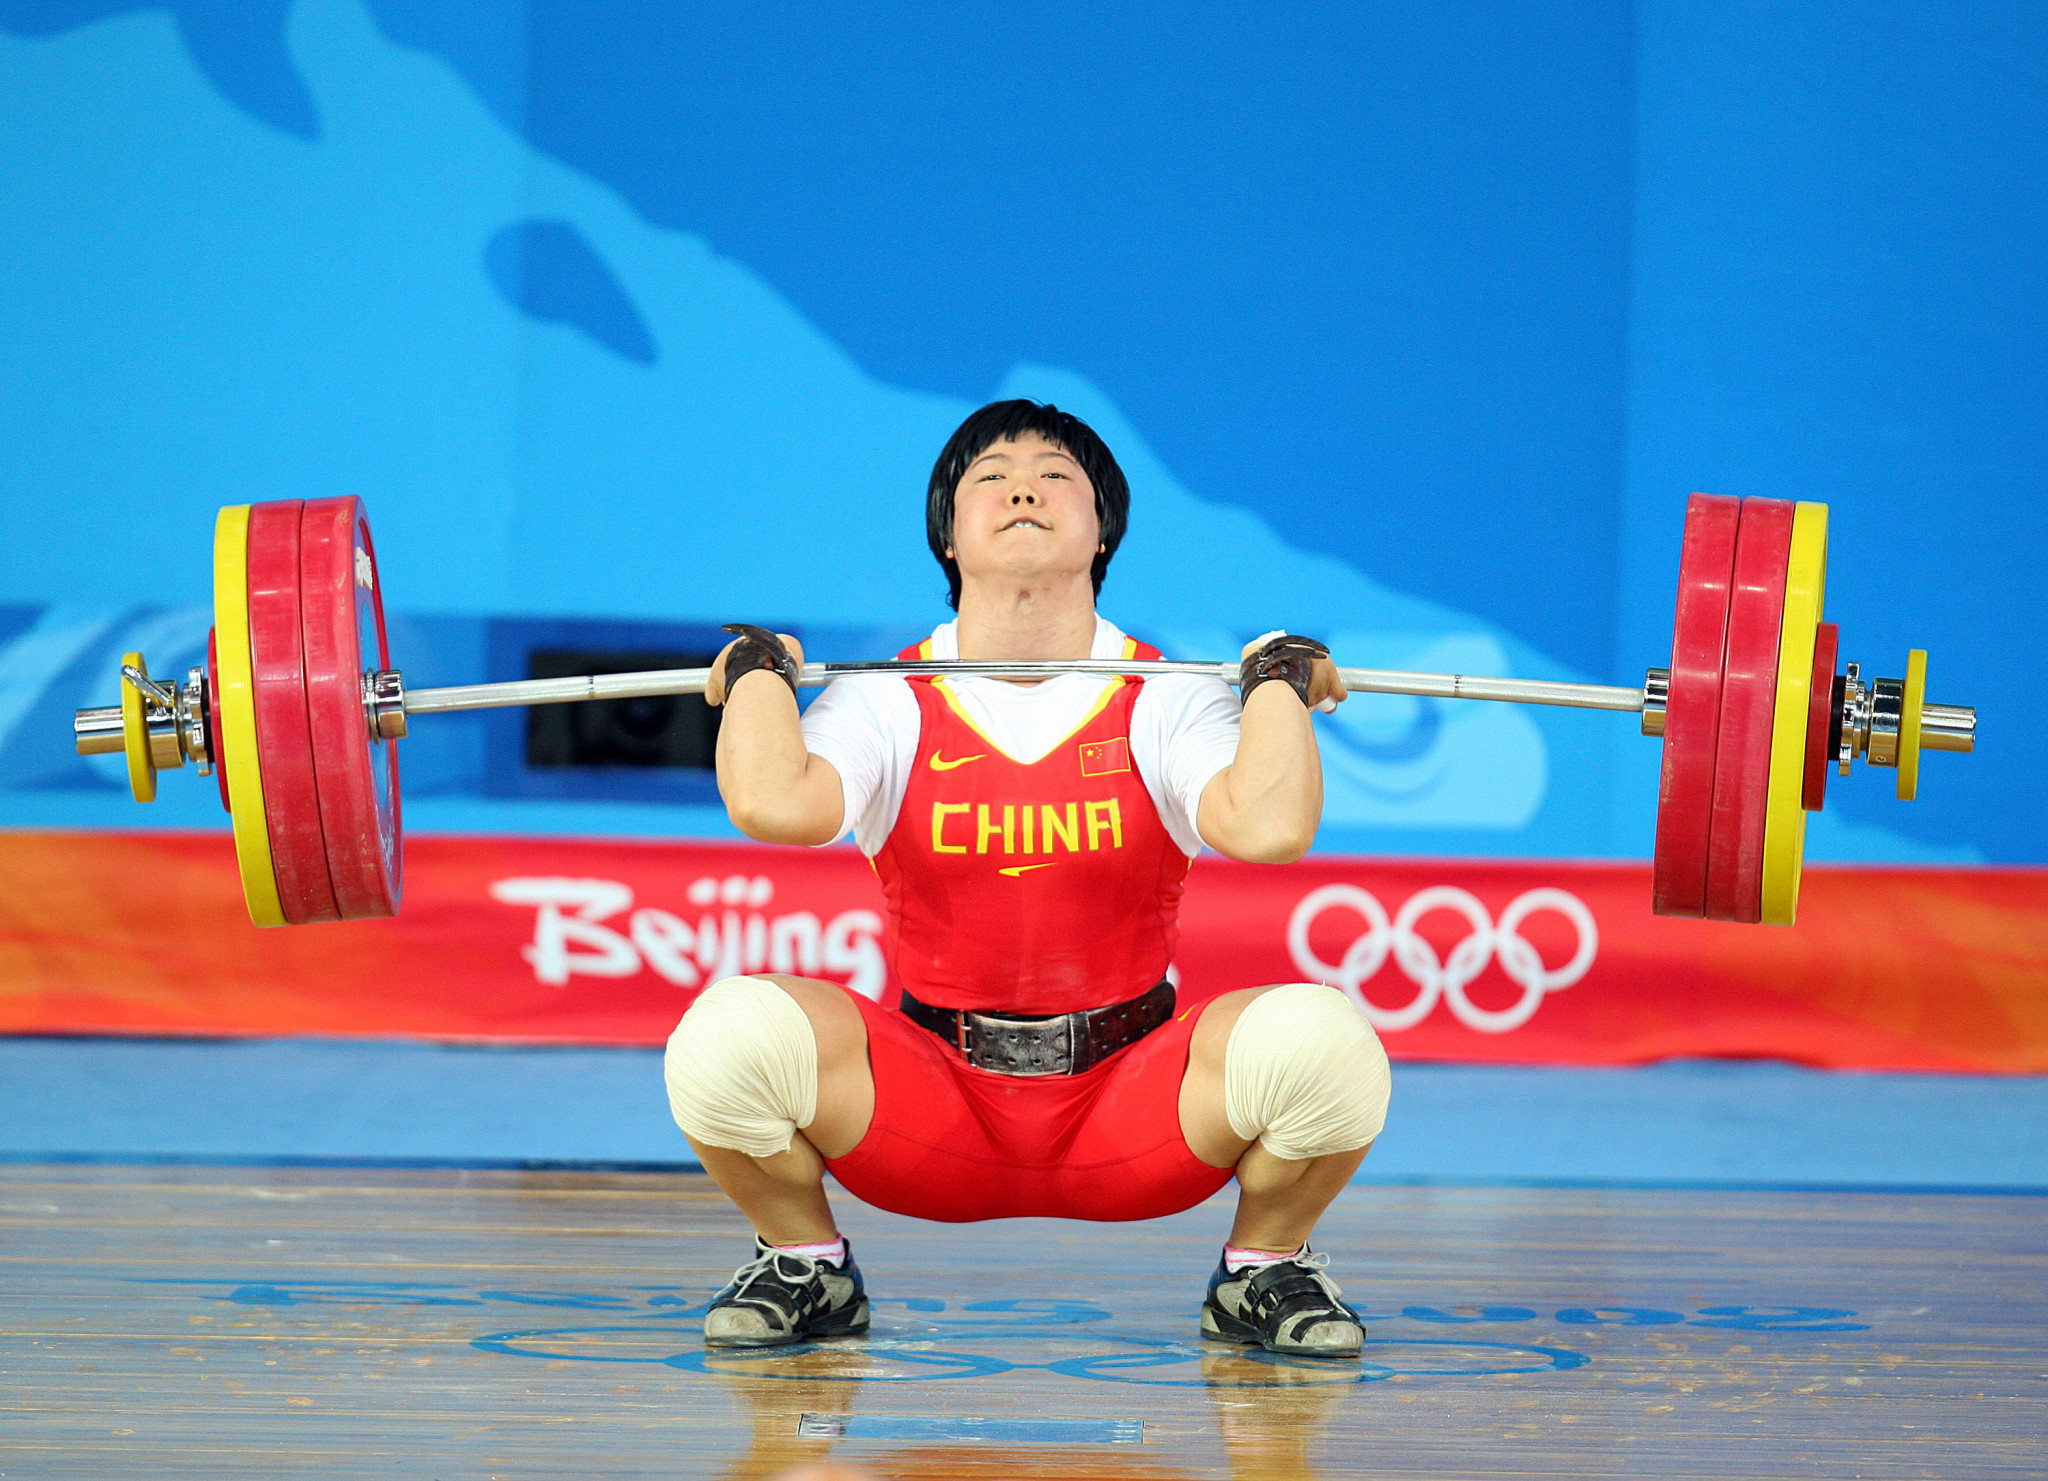 China facing year's ban from weightlifting after CAS confirm decision to strip them of two Olympic gold medals